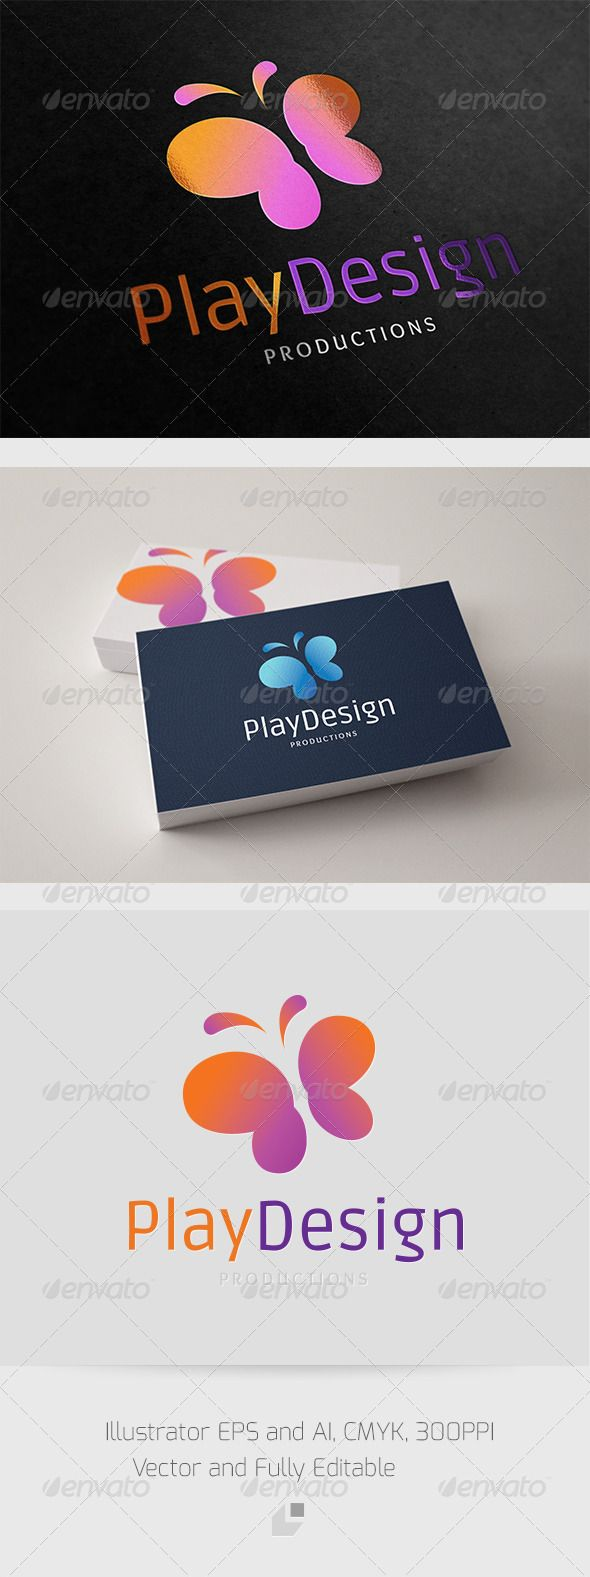 Play Design Logo  #GraphicRiver        Play Design – Logo Template 	 This logo design for all creative business.Excellent logo,simple and unique concept.  Logo Template Features   Illustrator AI, EPS 300PPI   CMYK   100% Scalable Vector Files  Easy to edit color / text  Ready to print  Free font used 	 Ruda  	 Overlock    	 If you buy and like this logo, please remember to rate it. Thanks!     Created: 6November12 GraphicsFilesIncluded: VectorEPS #AIIllustrator Layered: No…